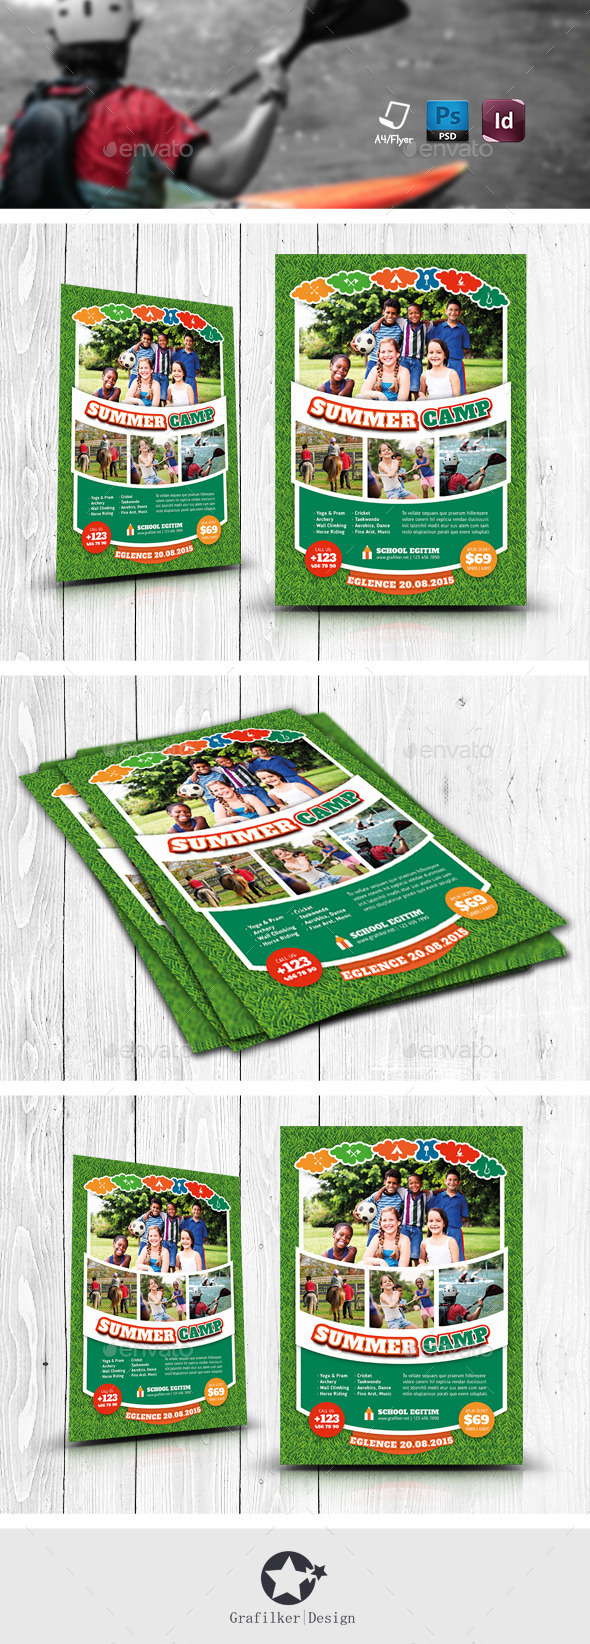 Summer Camp Flyer Templates - Corporate Flyers